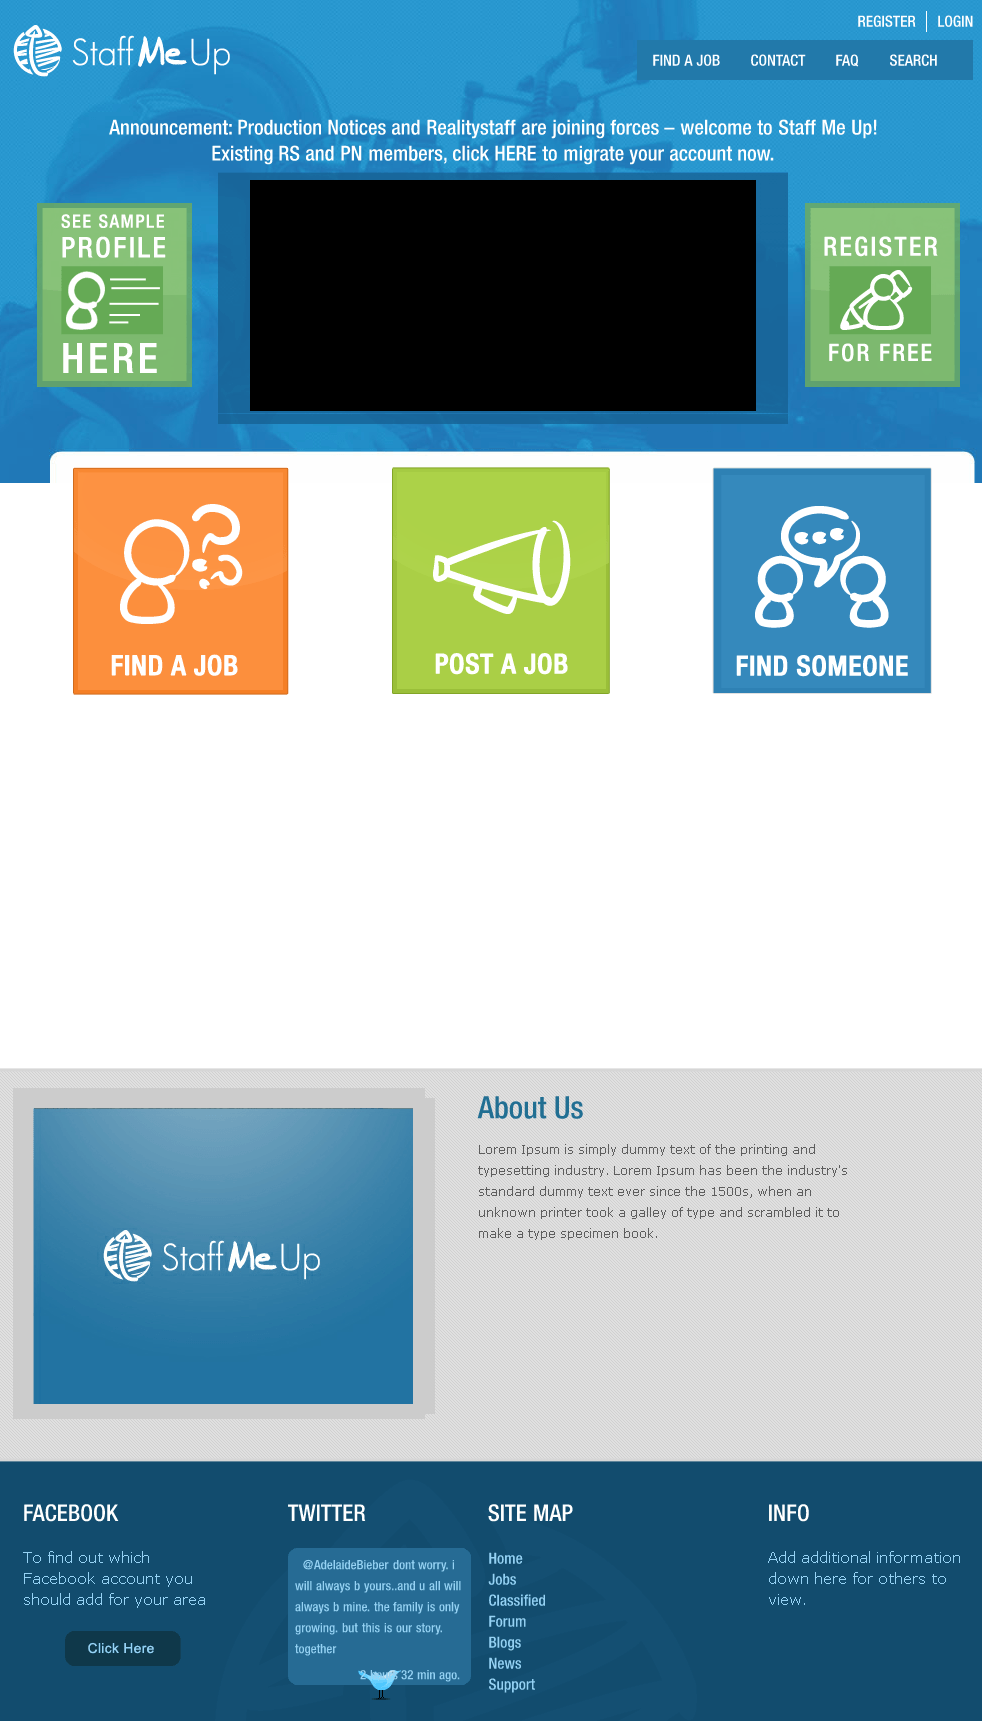 Website for Employment 'Staff Me Up' Using Drupal – Online Job Portal